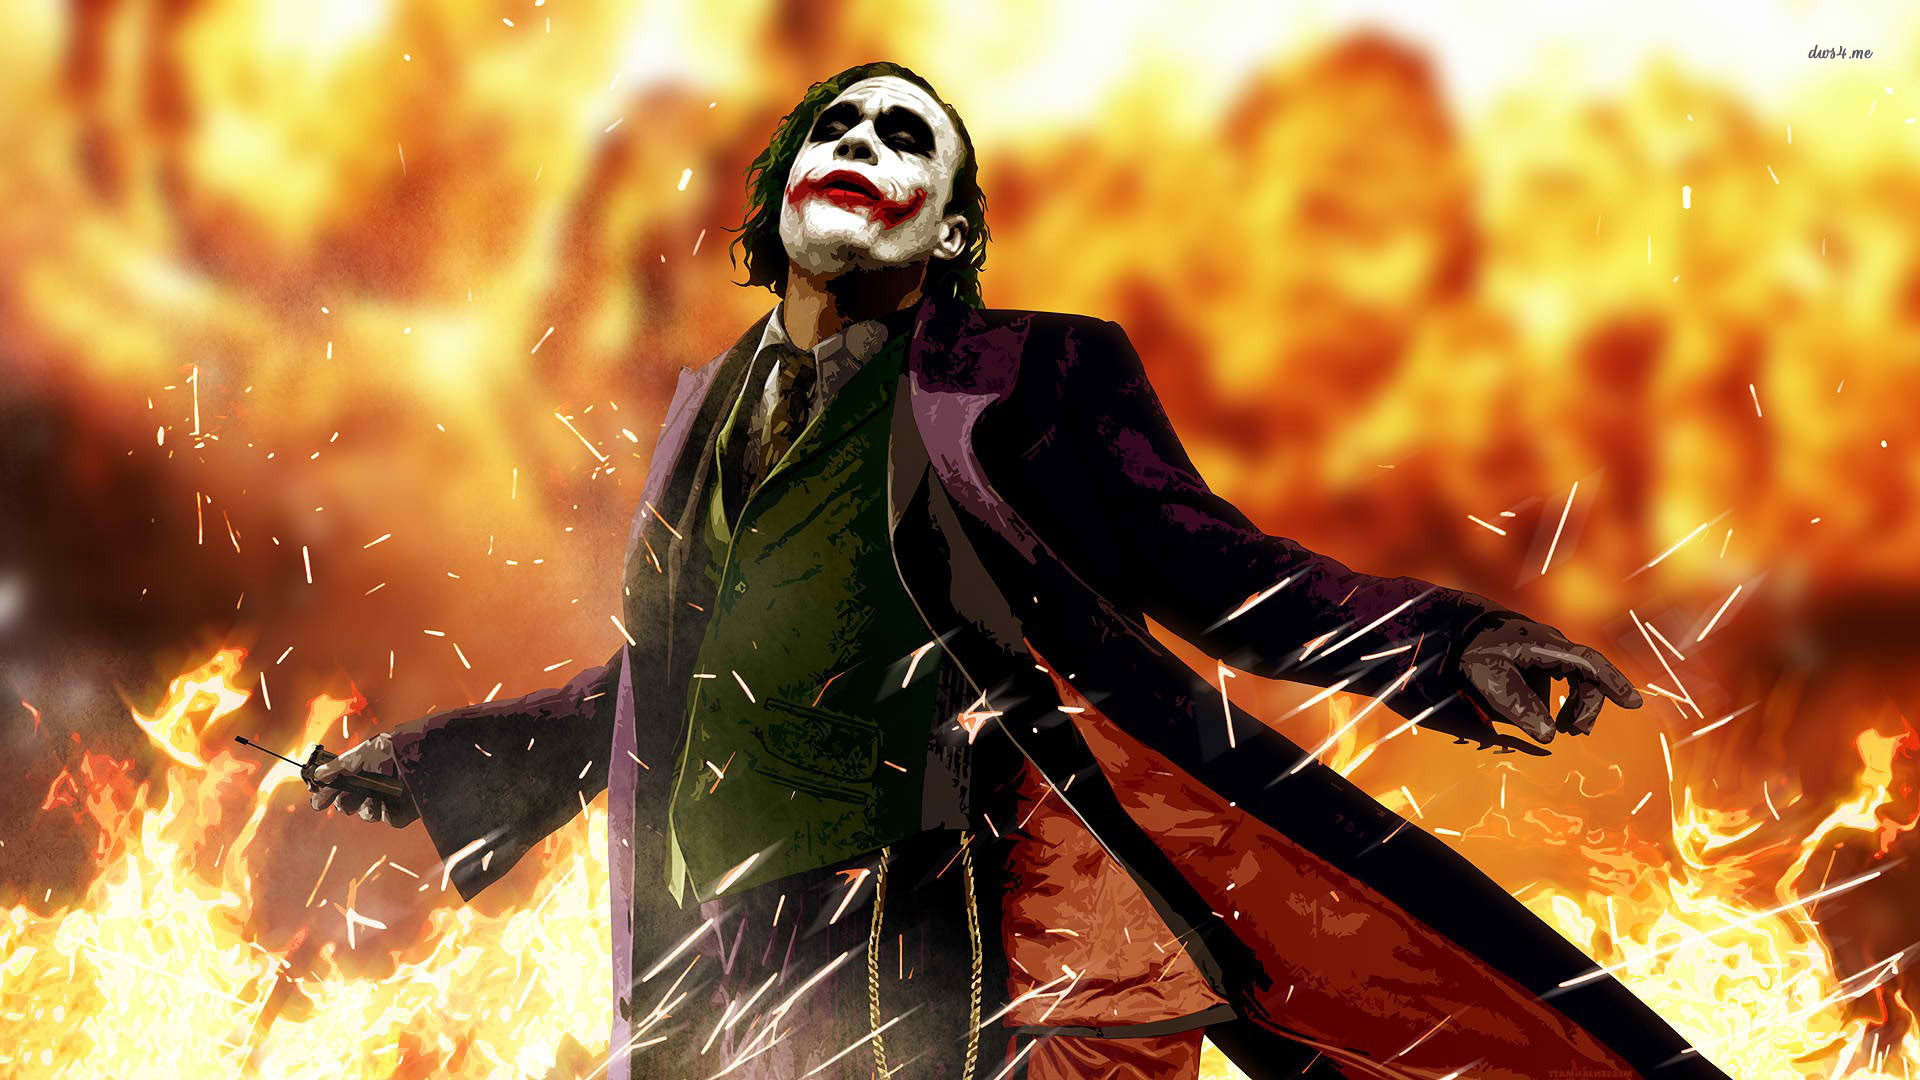 Joker The Dark Knight HD Wallpaper Movies Wallpapers 1920x1080